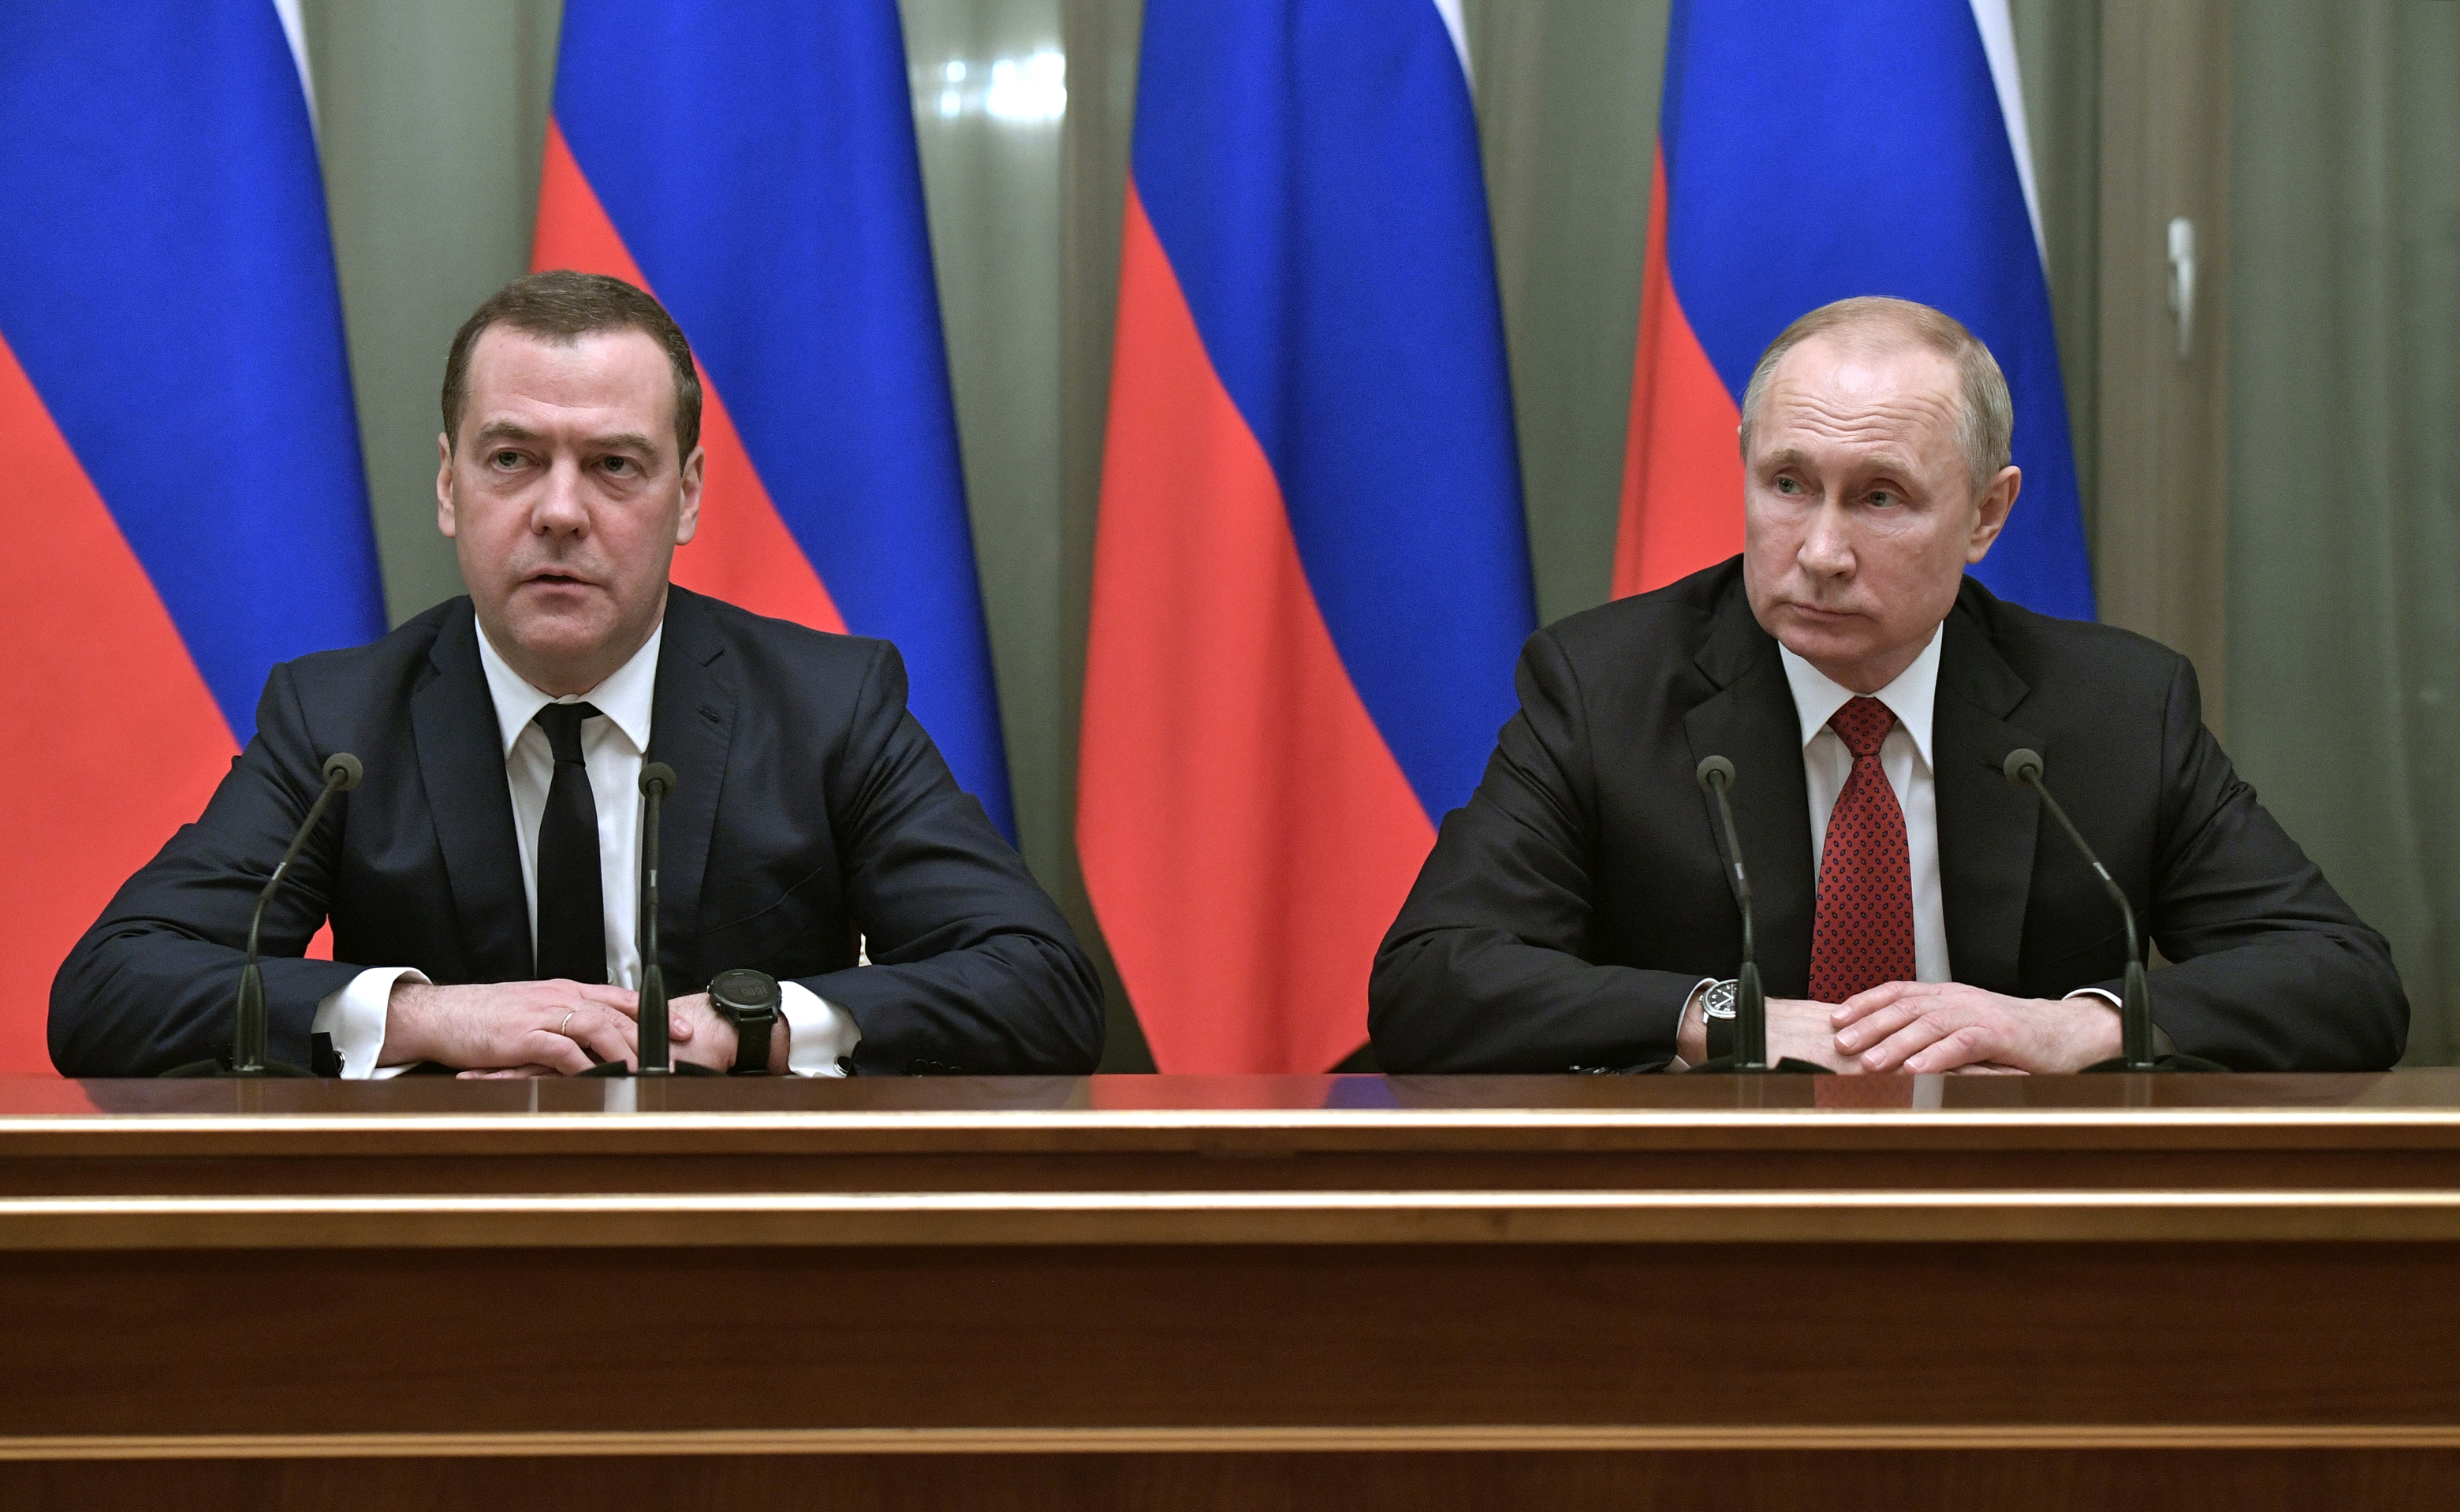 Dmitry Medvedev Was Putin S Political Wingman For Years Now Putin Wants Some Distance The Washington Post